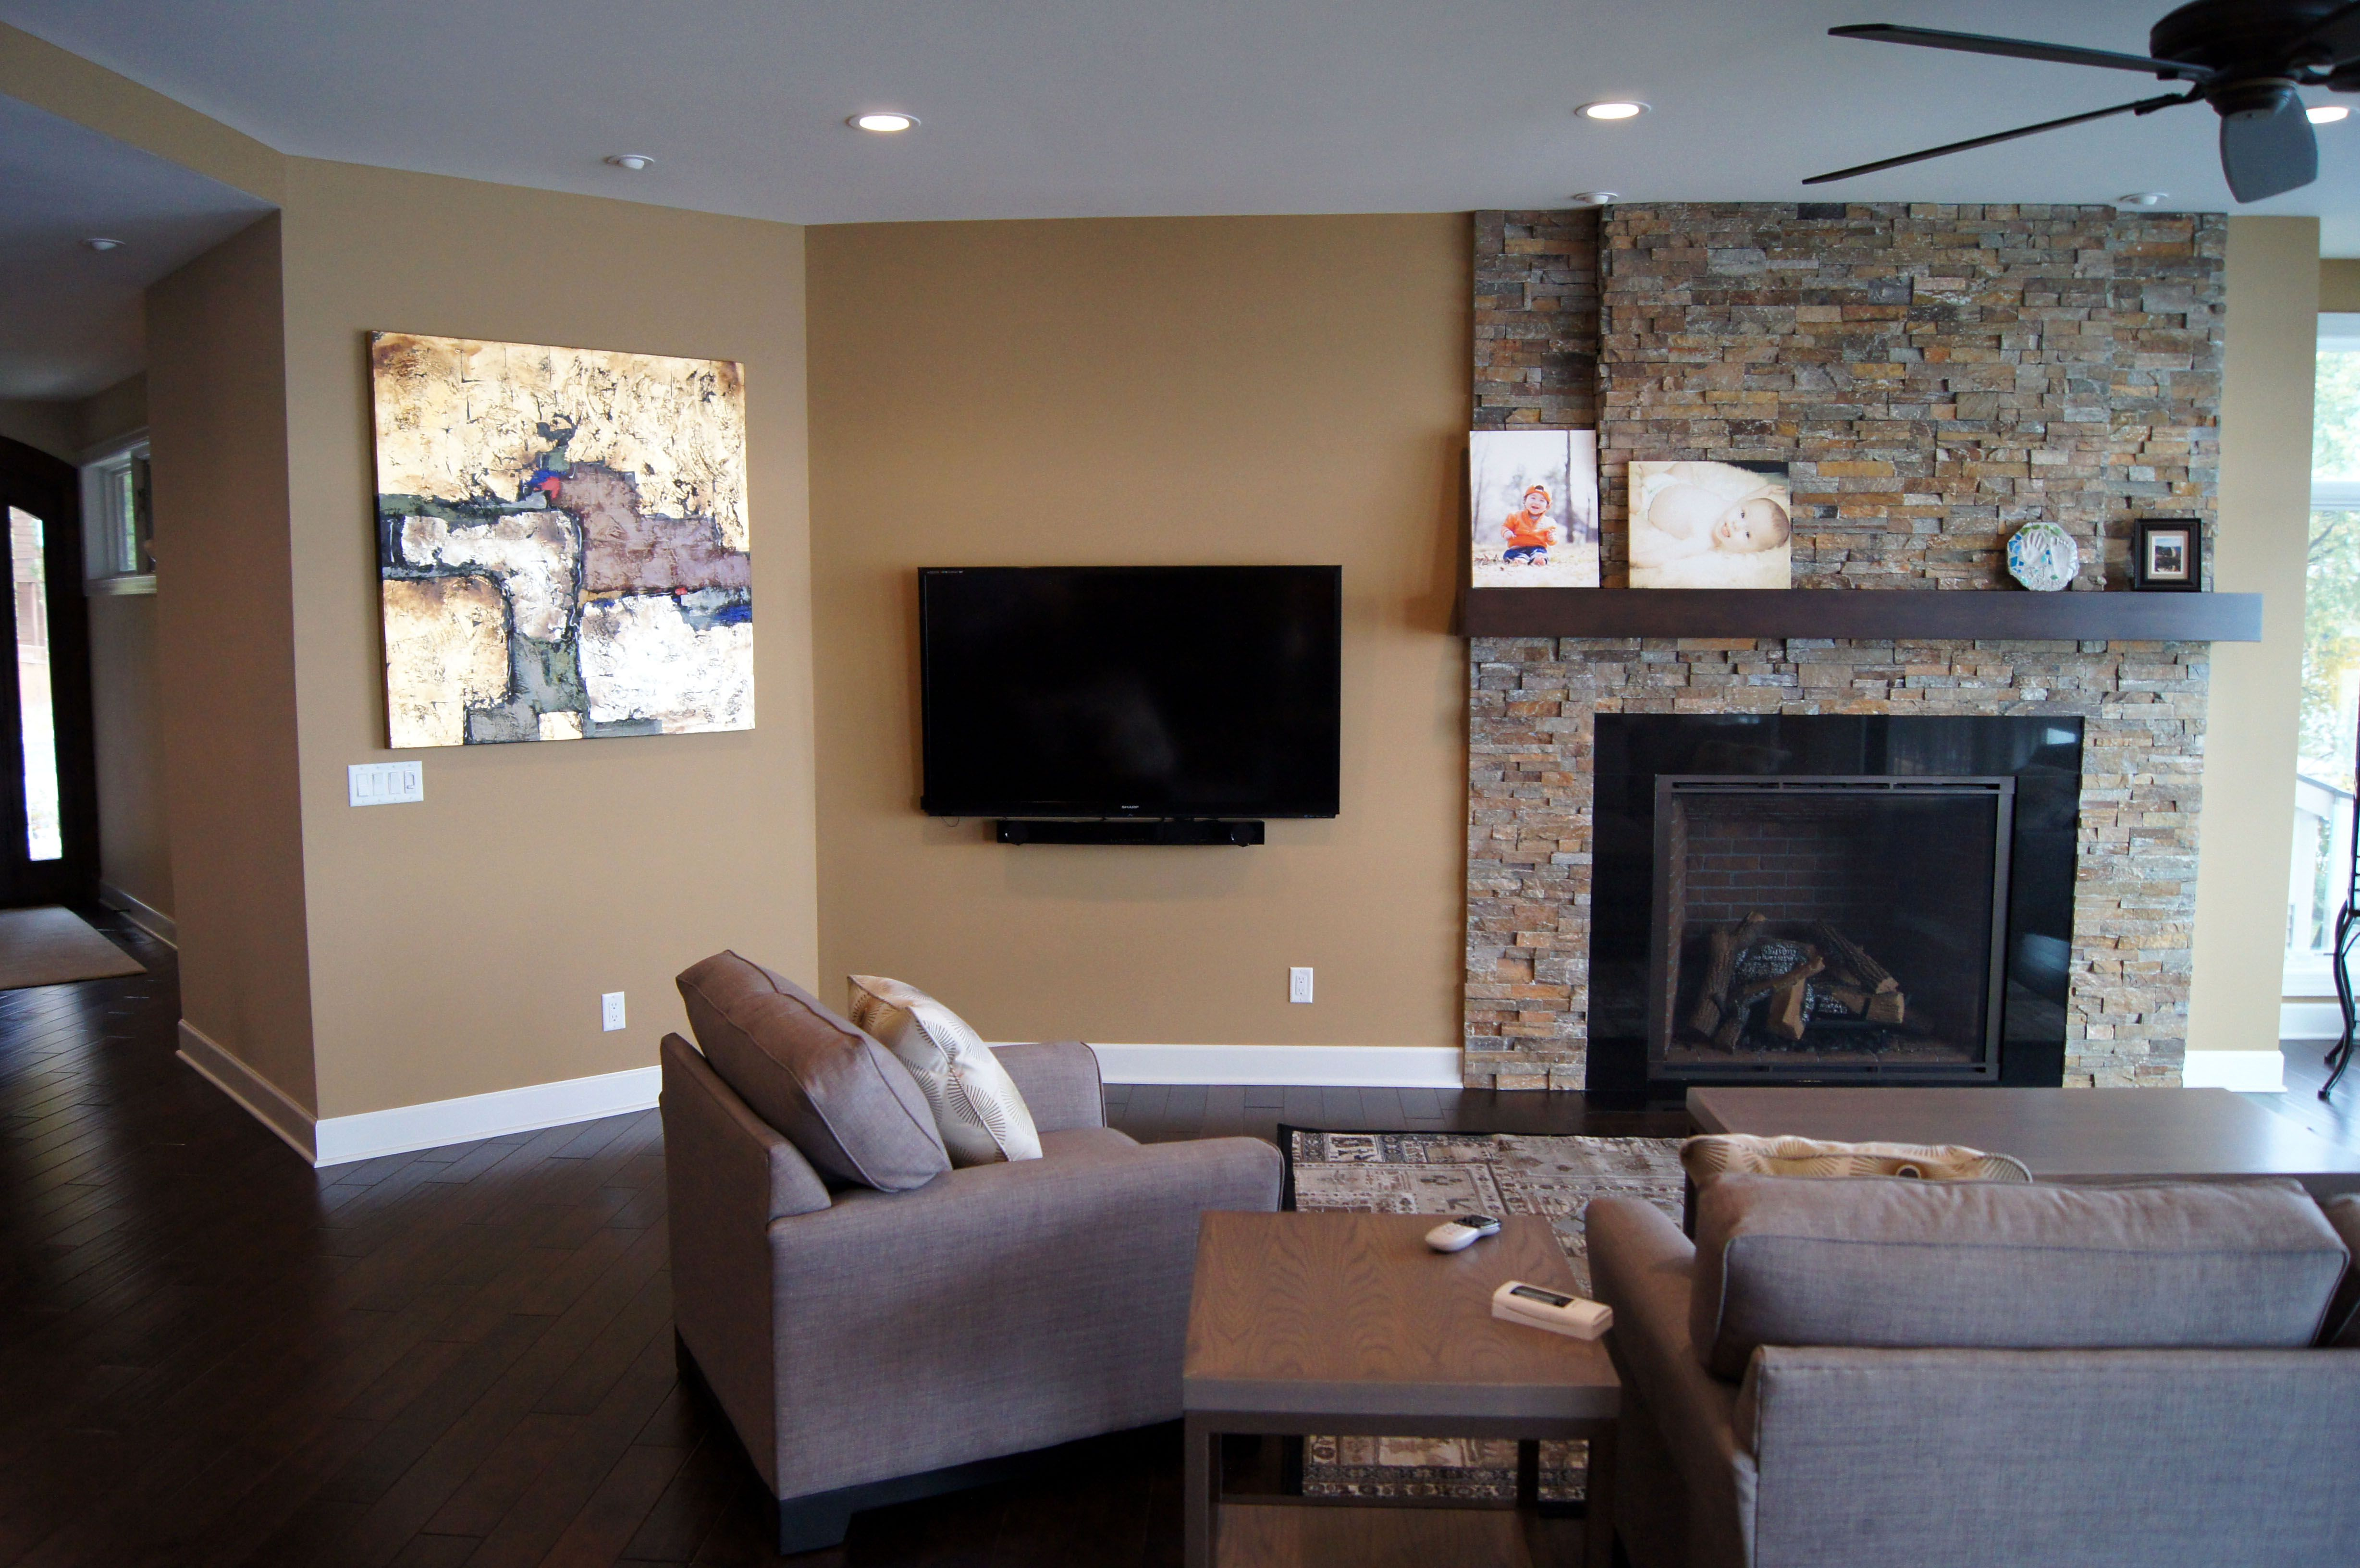 Soft earth tones in living room compliment the stone fireplace. Home designed by Udvari-Solner Design Company which specializes in residential design and is located in Madison, WI.